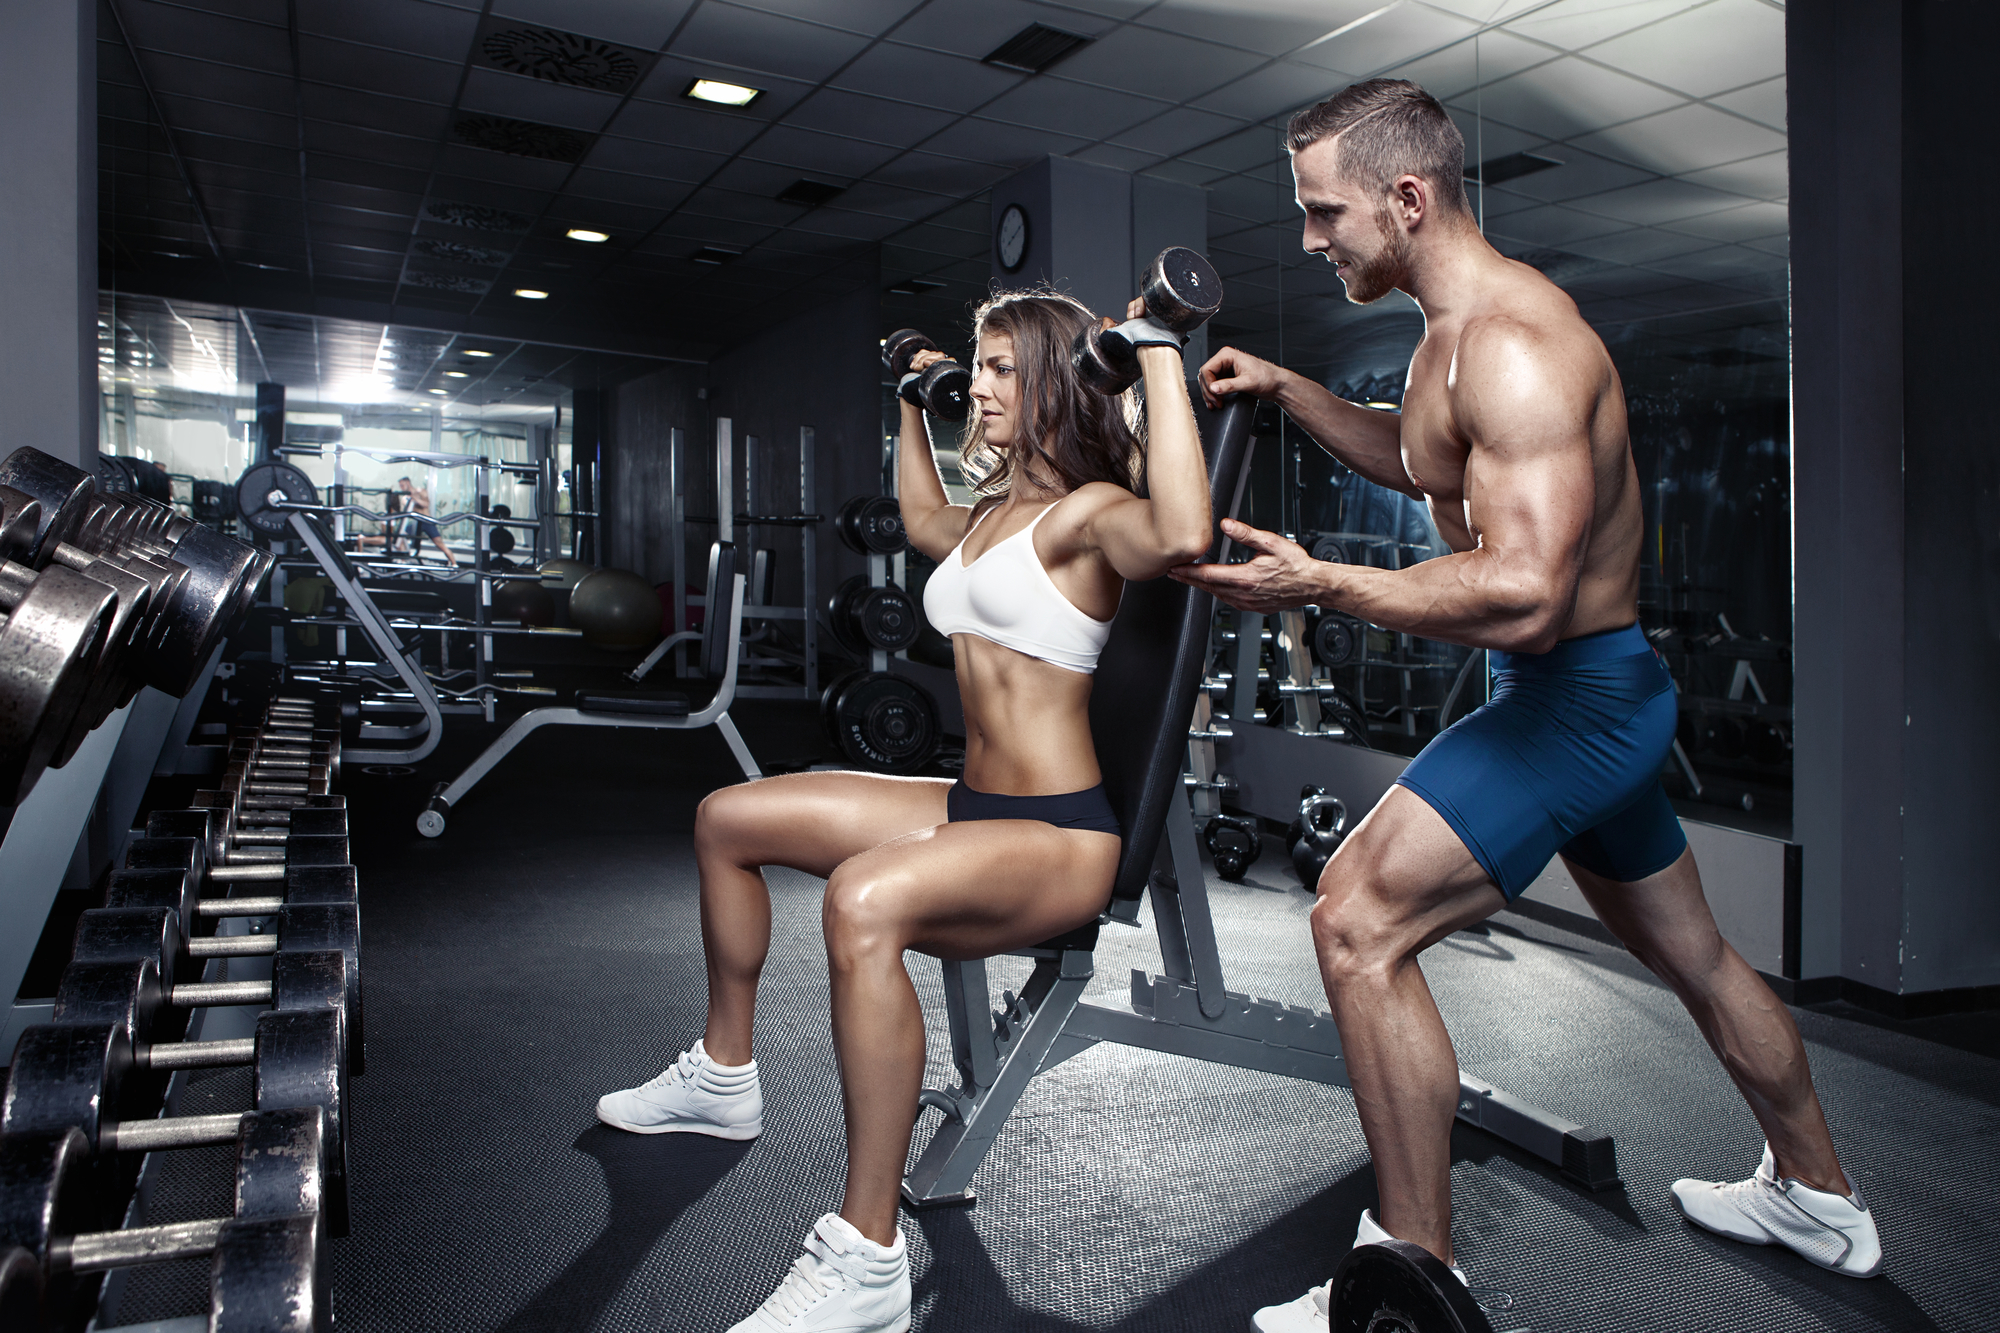 ''Fitness Centre In Tambaram offer special inaugural offers on all the regular tariffs, we do offer Personal Training , which is taken care directly by out Fitness Professional by One on One basis, drop in sometime to know more about the trainings we offer.